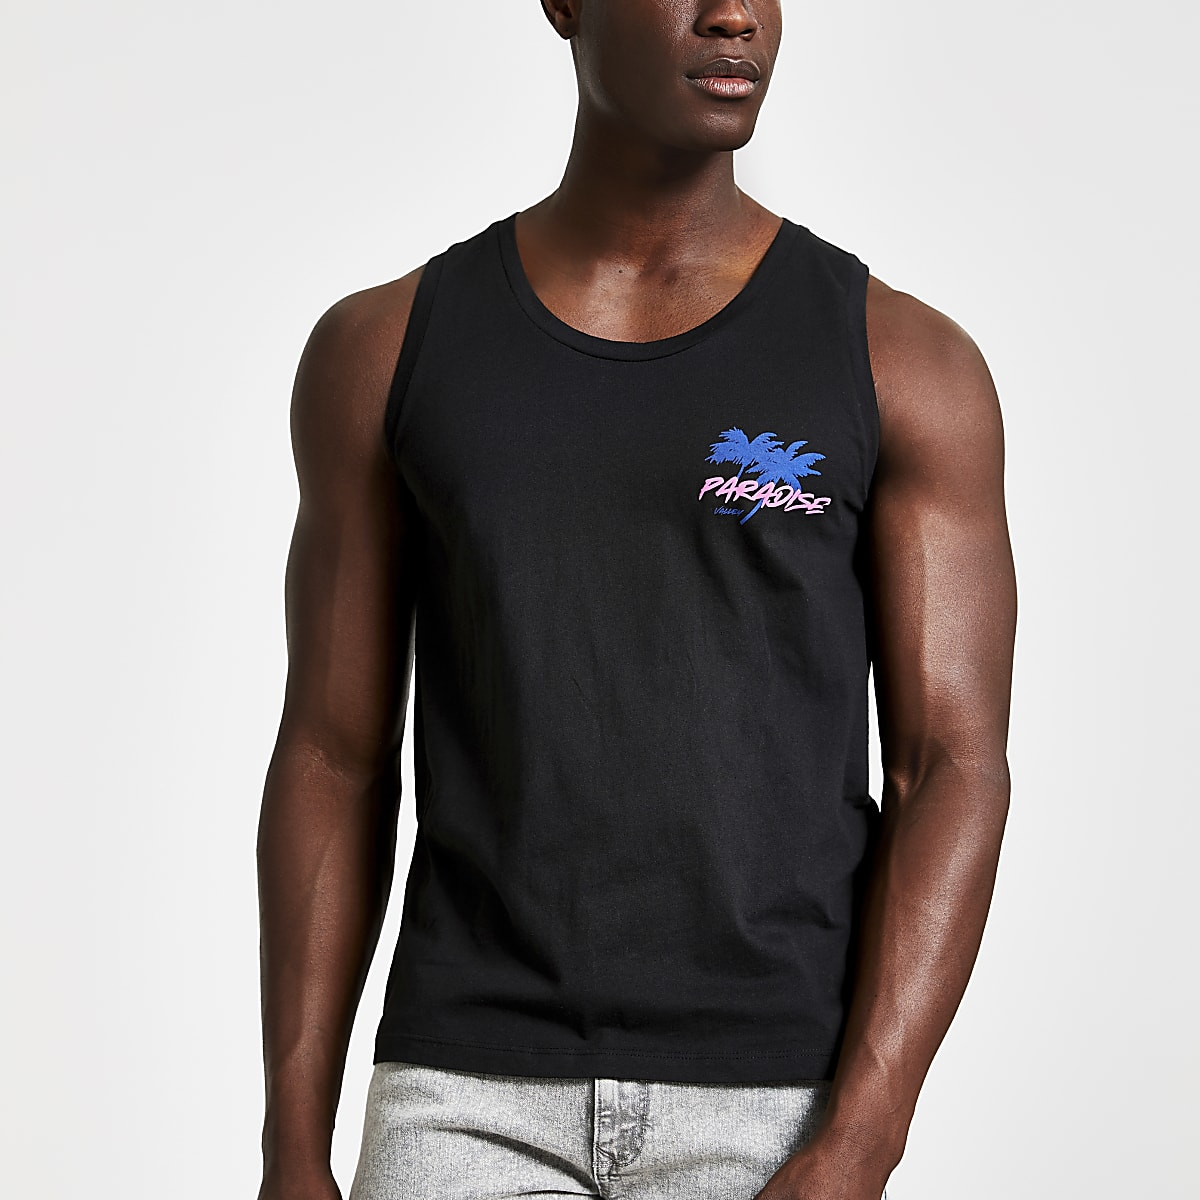 Jack and Jones black tank top